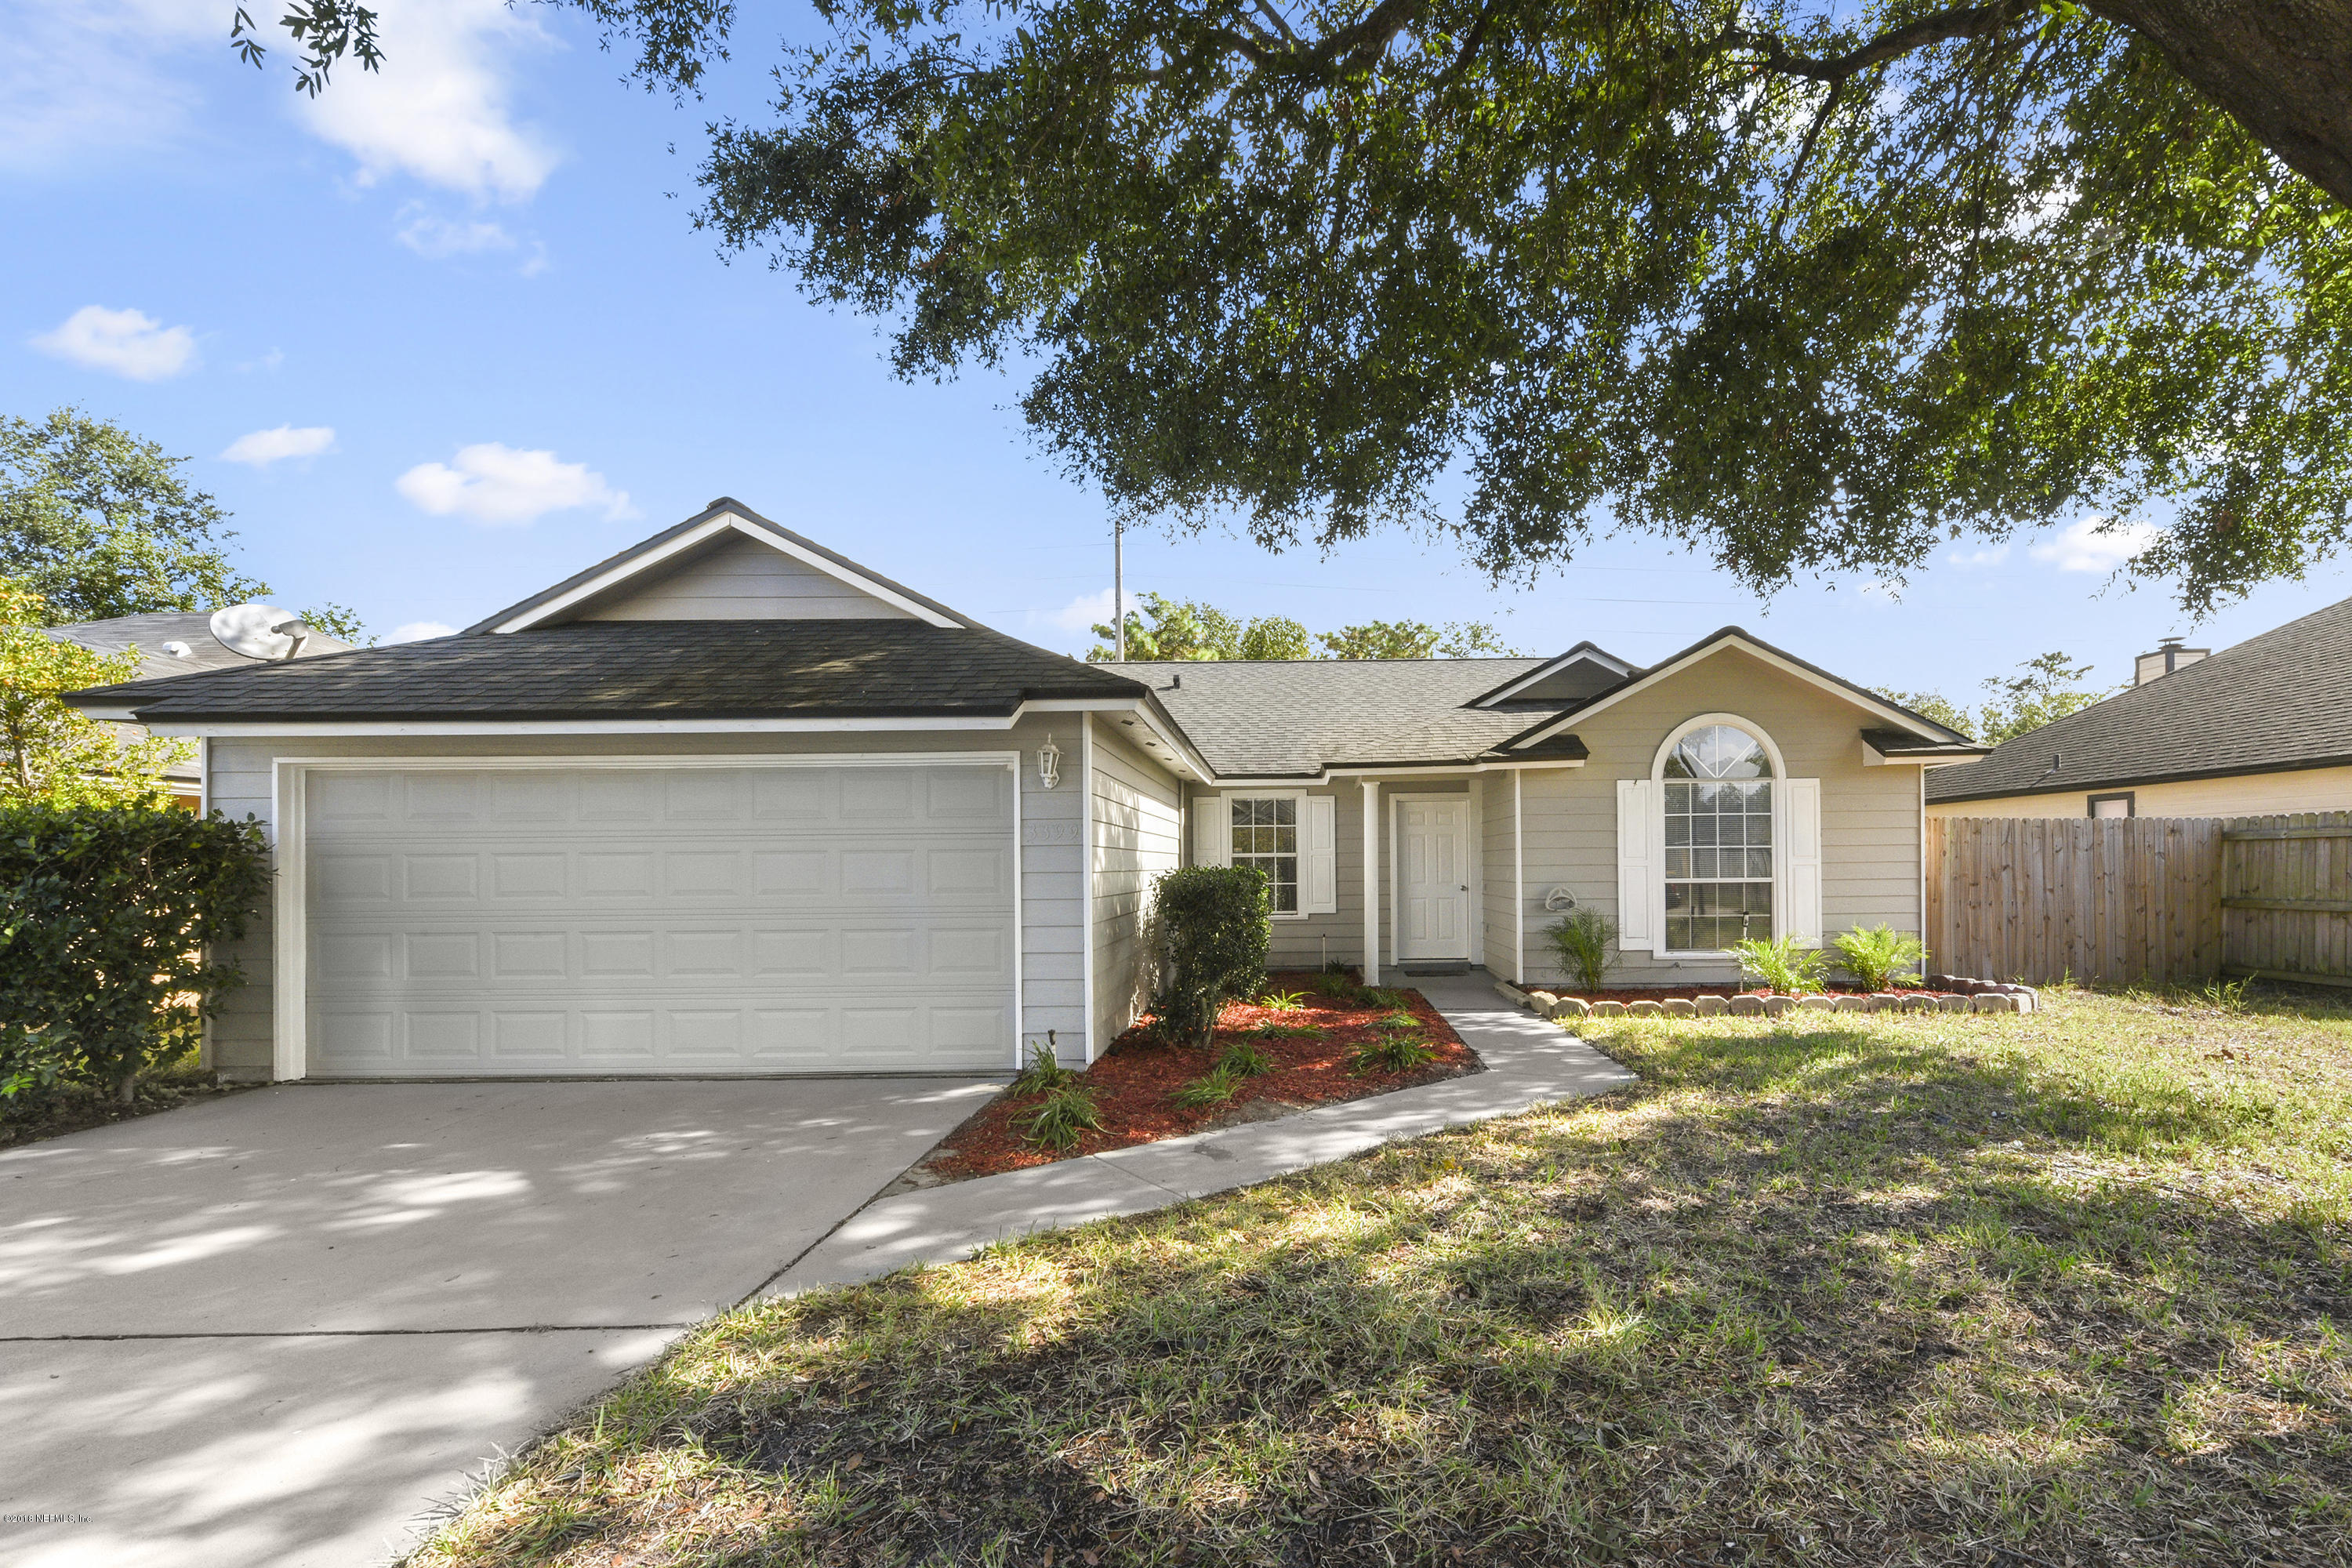 3399 CHARMONT, JACKSONVILLE, FLORIDA 32277, 4 Bedrooms Bedrooms, ,2 BathroomsBathrooms,Residential - single family,For sale,CHARMONT,966760